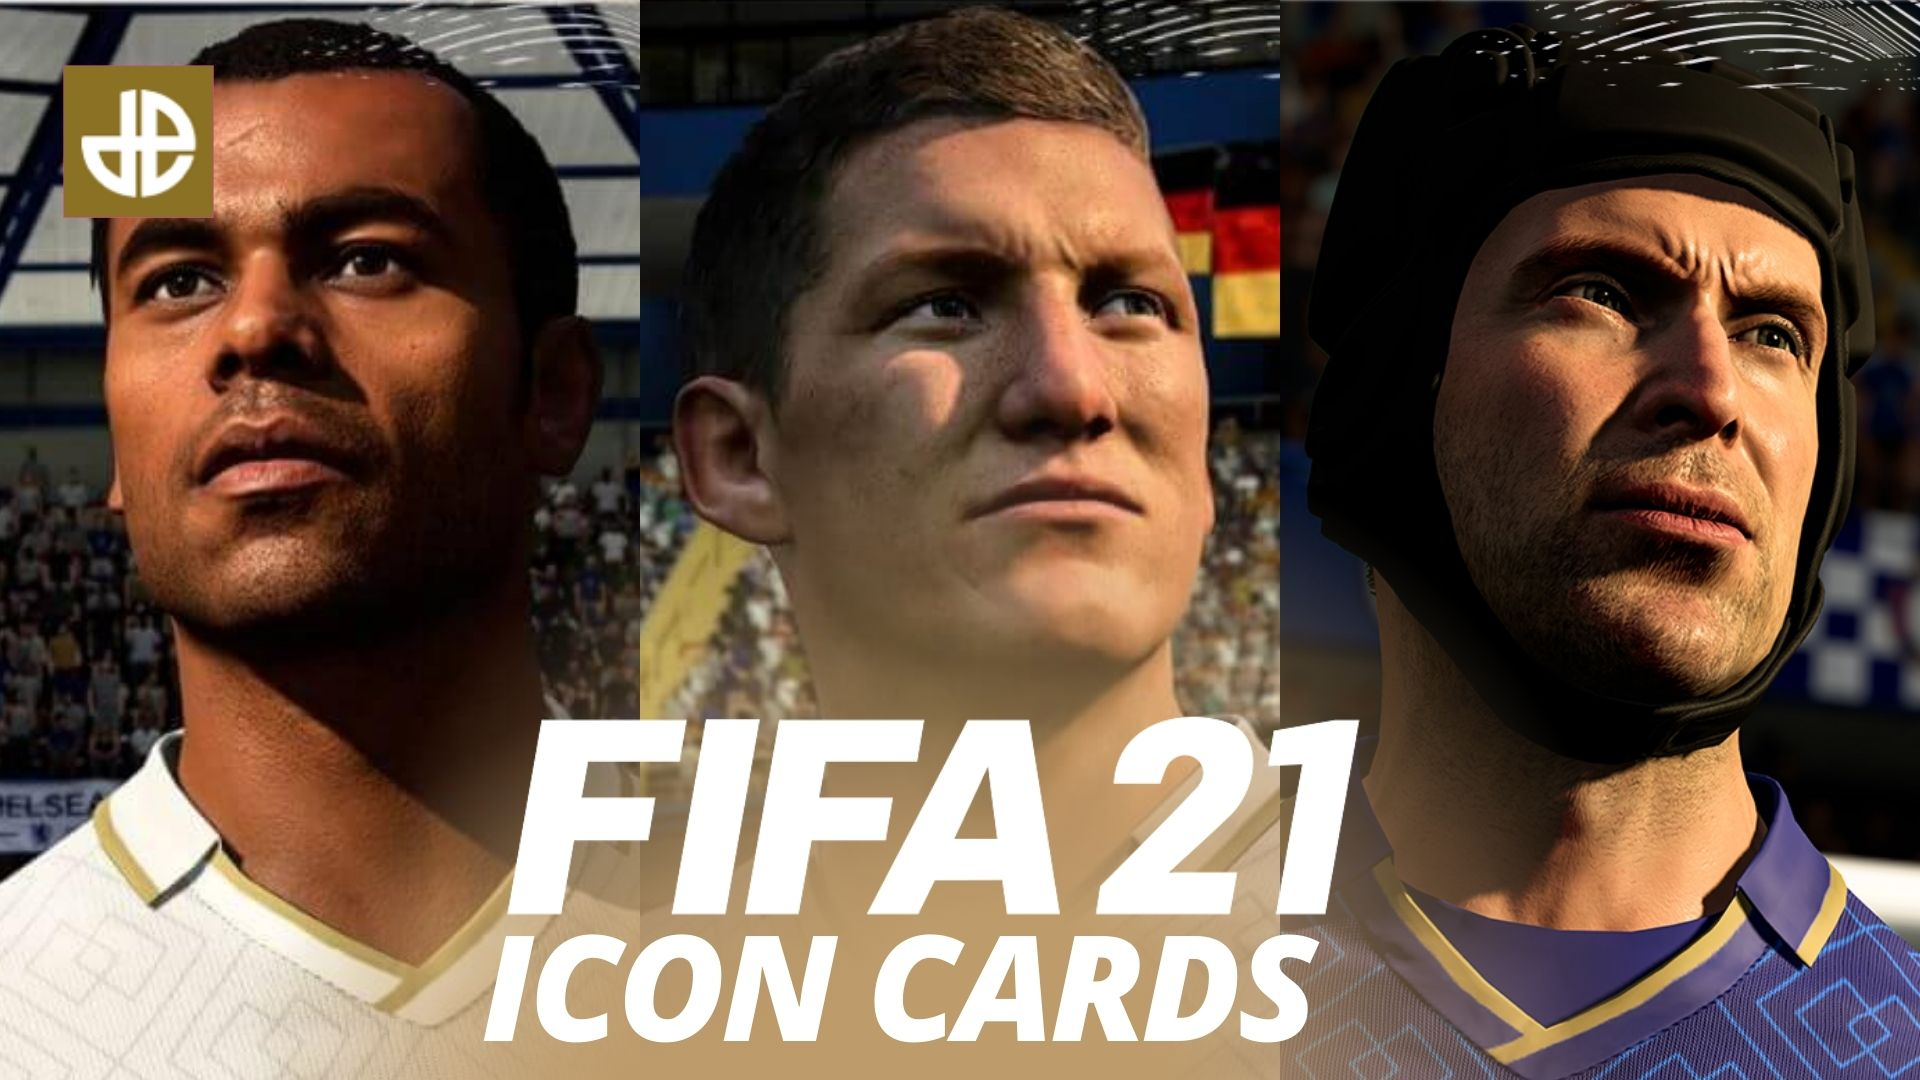 FIFA 21 ICONs list image including Cech, Cole, and Schweinsteiger